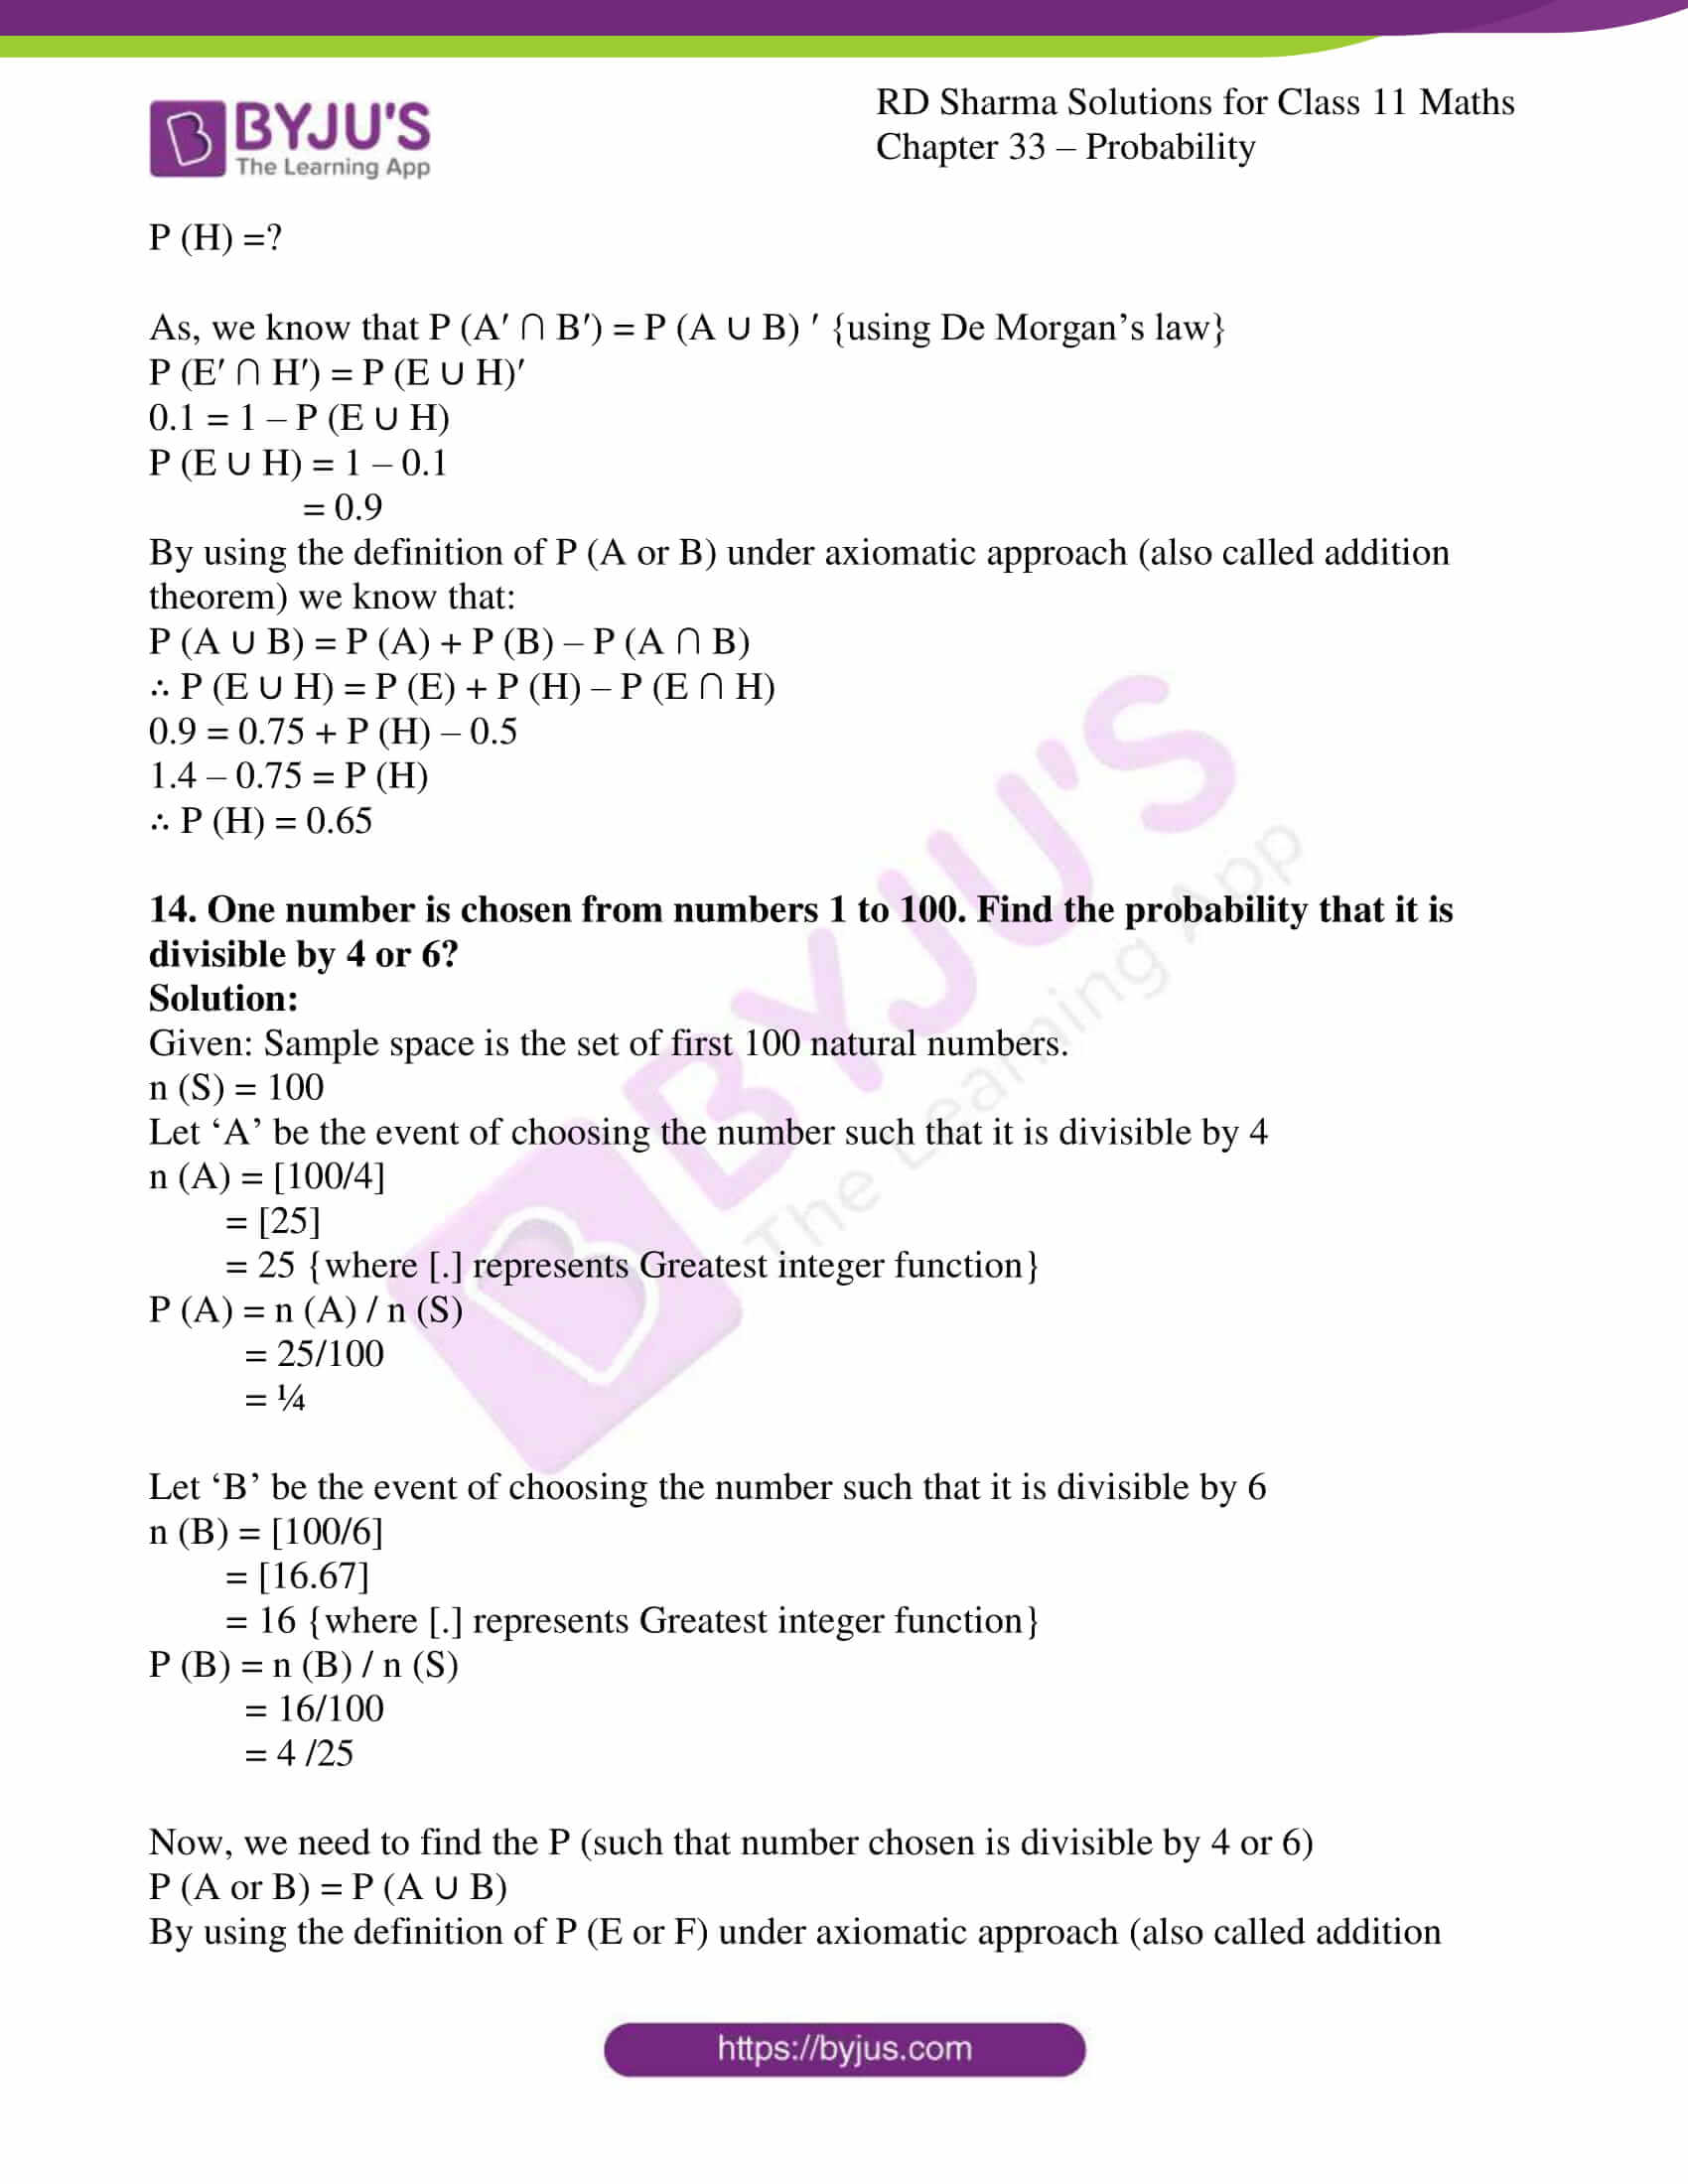 rd sharma class 11 maths chapter 33 ex 4 12